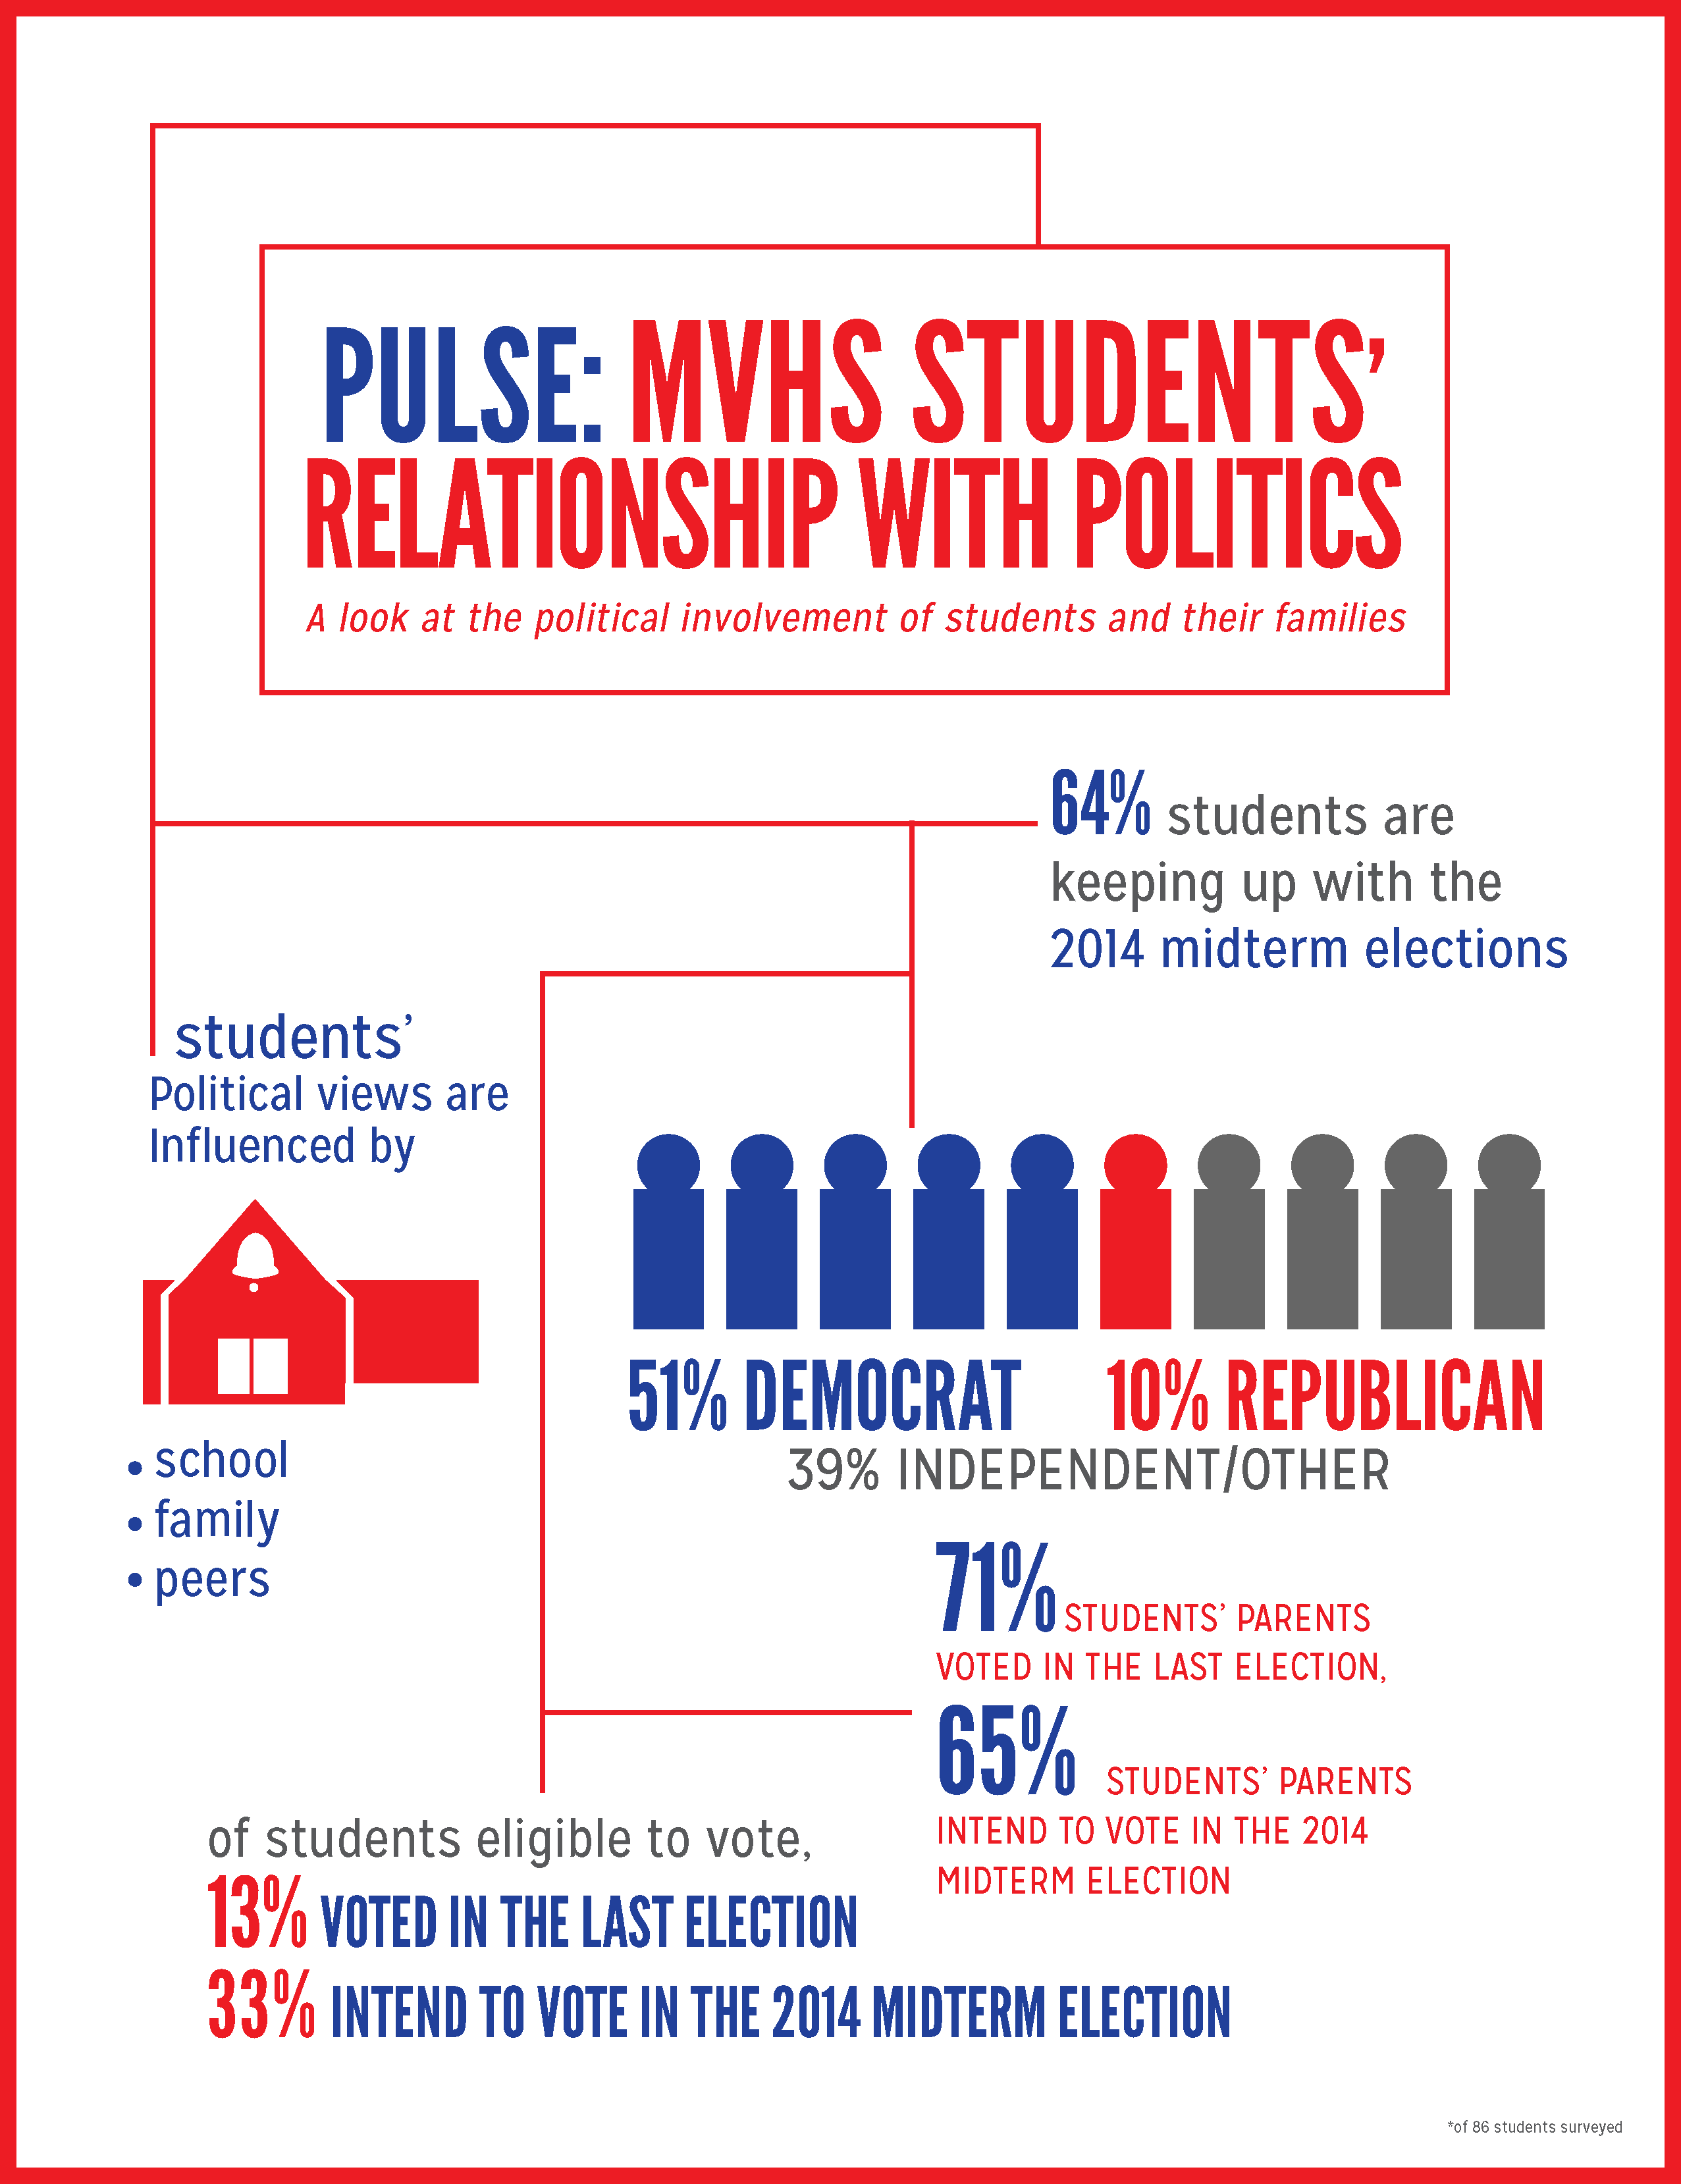 Pulse: MVHS students' relationship with politics